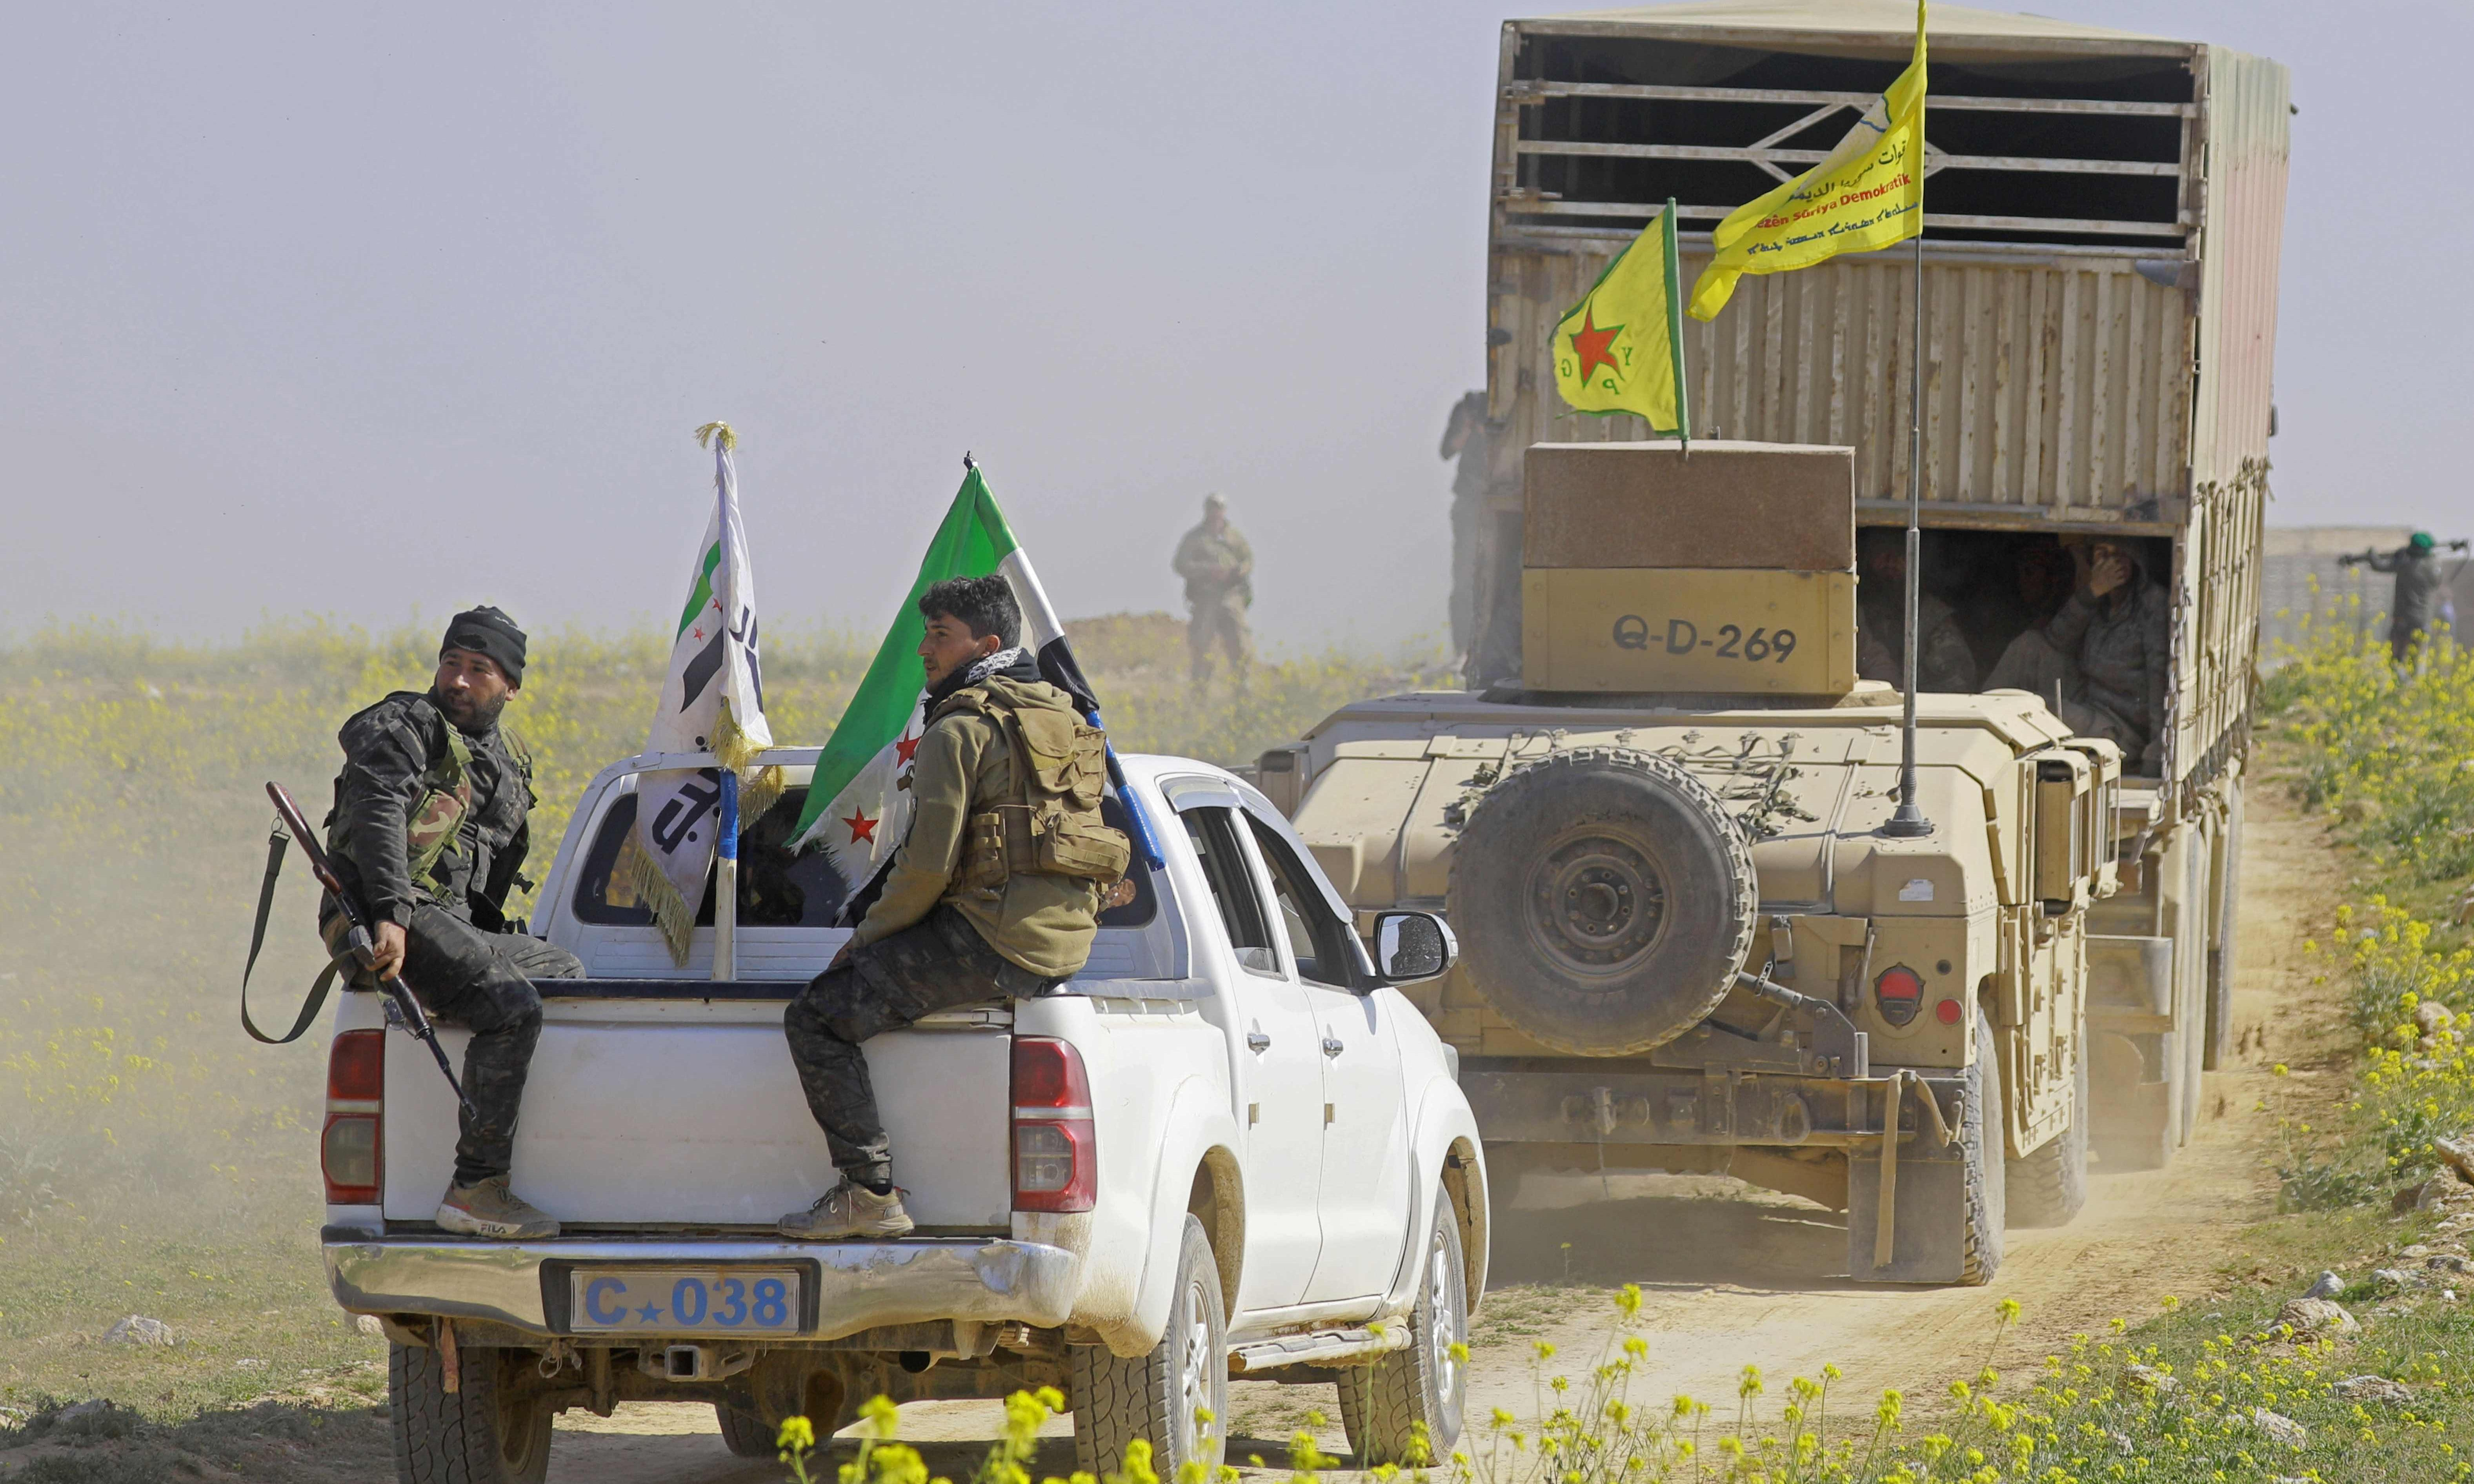 Syria's Kurds deserve international protection